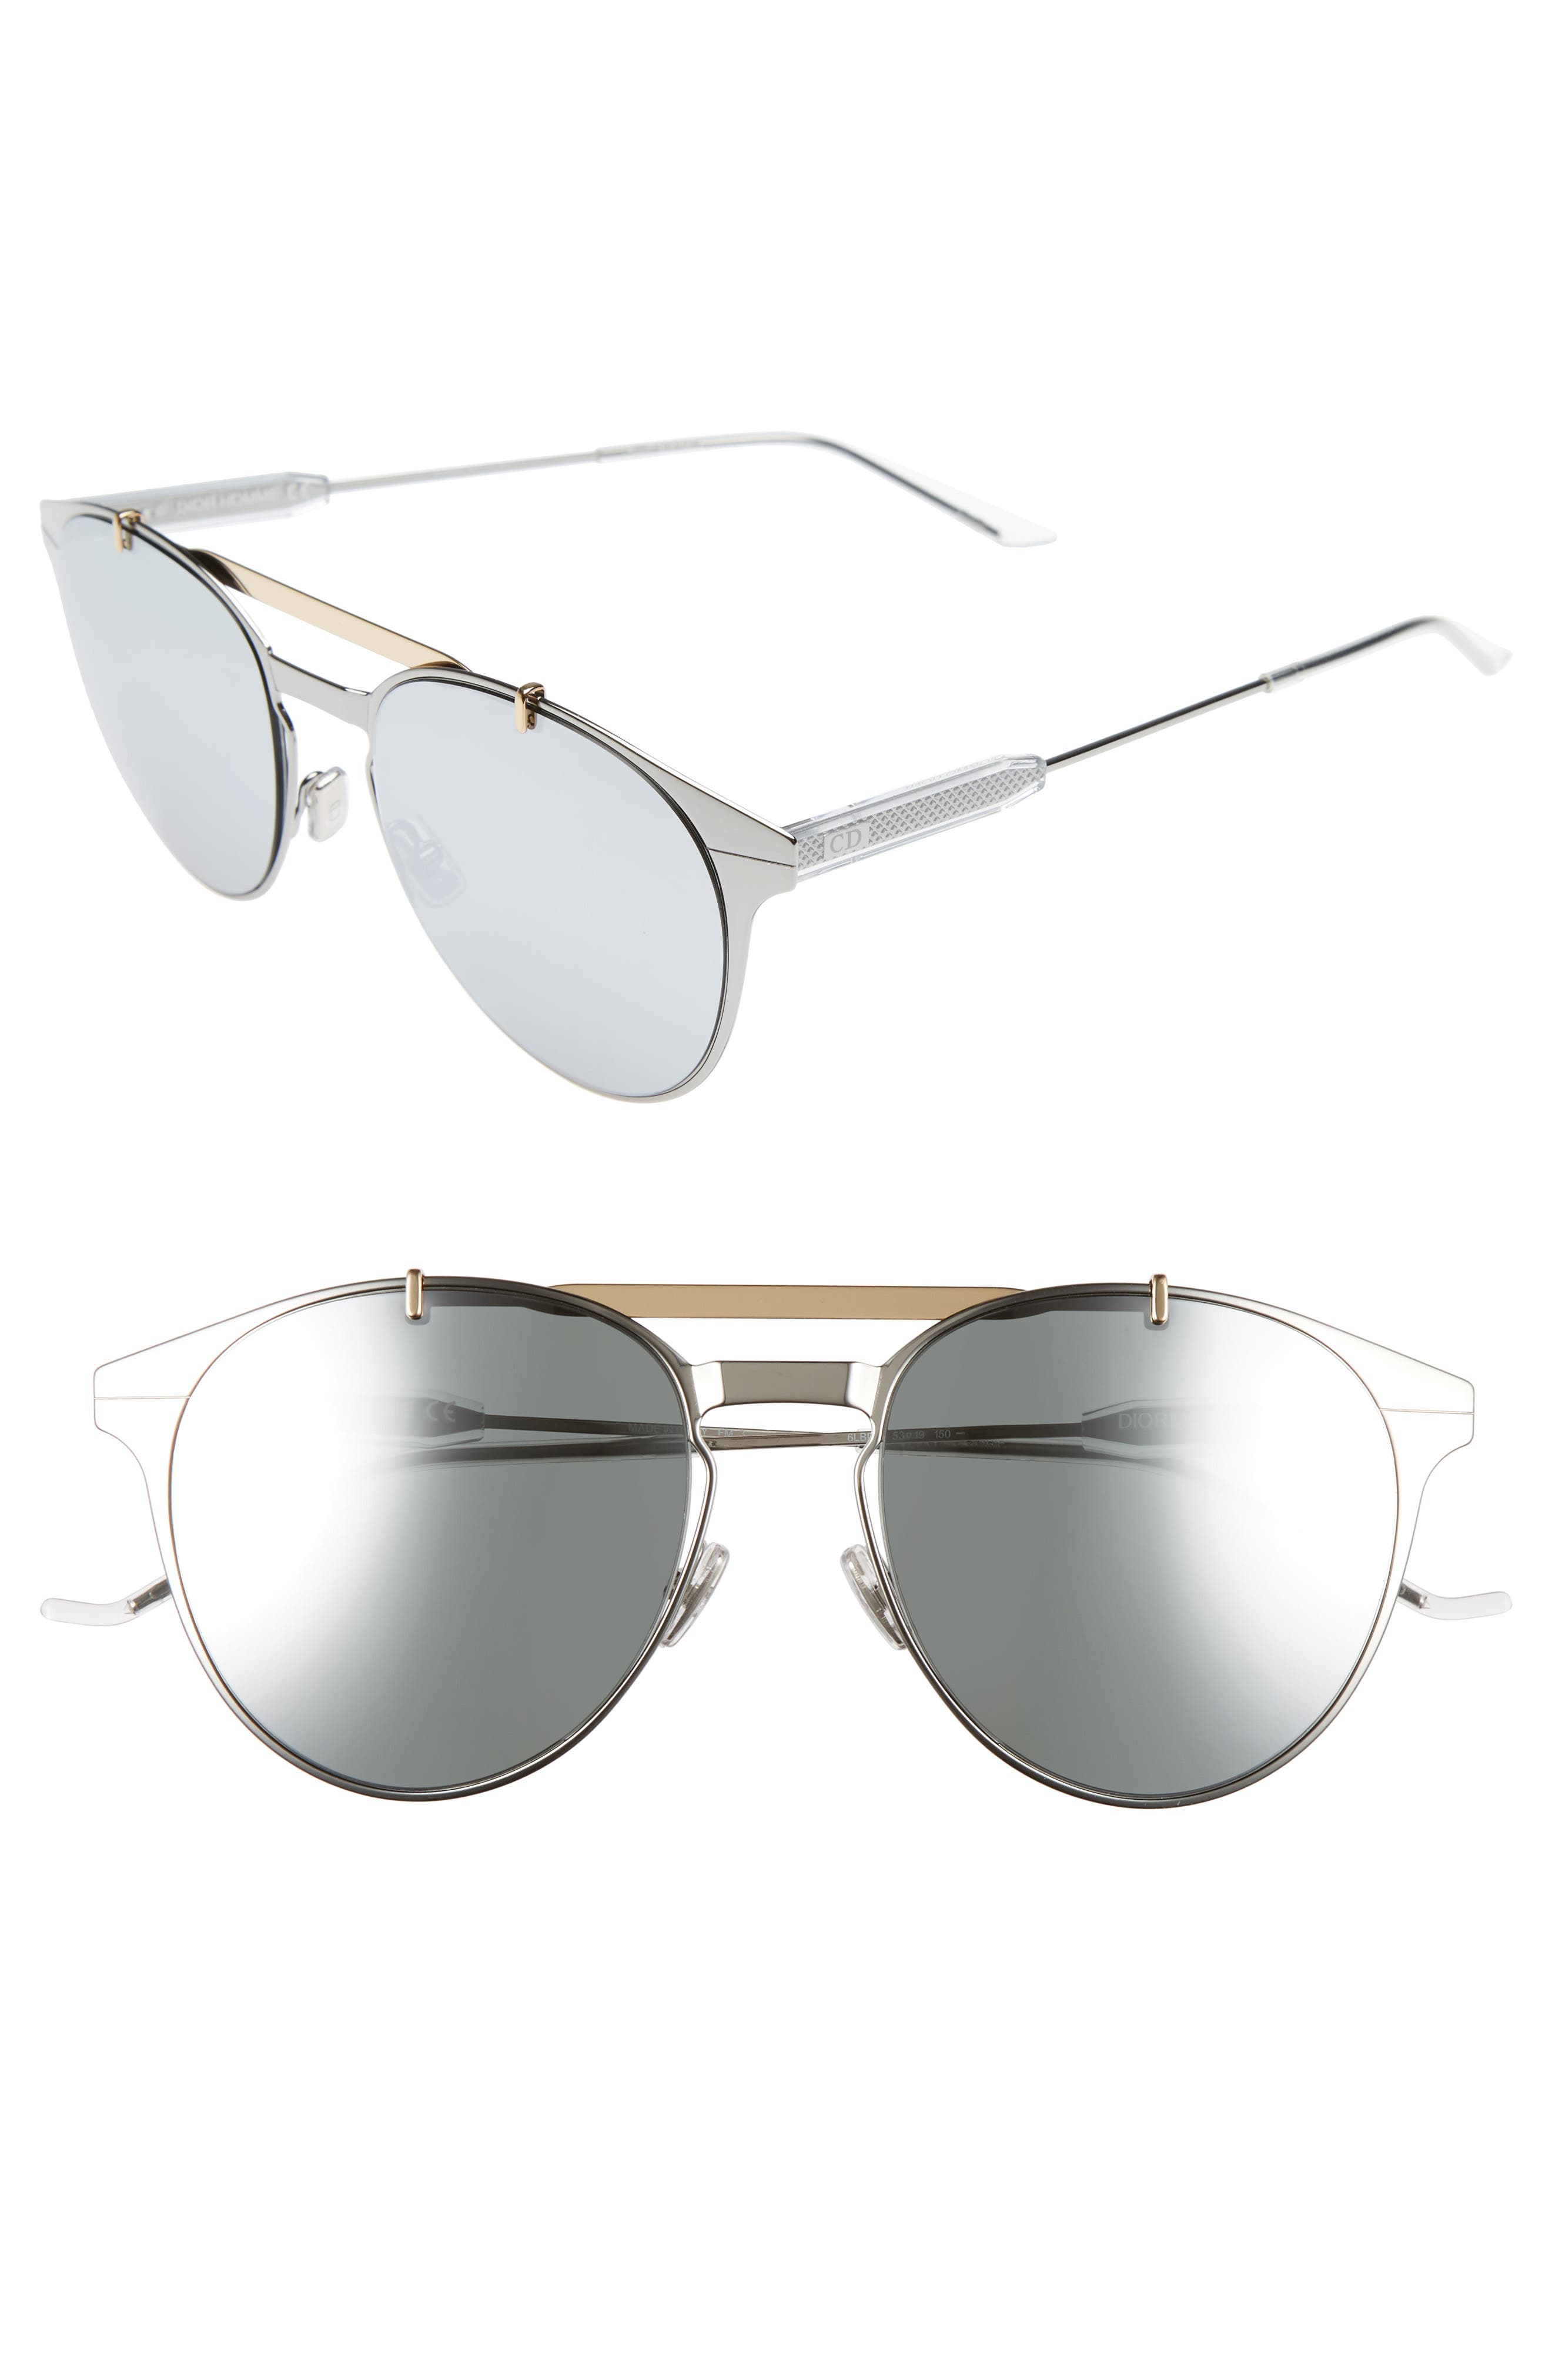 Main Image - Dior Homme Motion 53mm Sunglasses